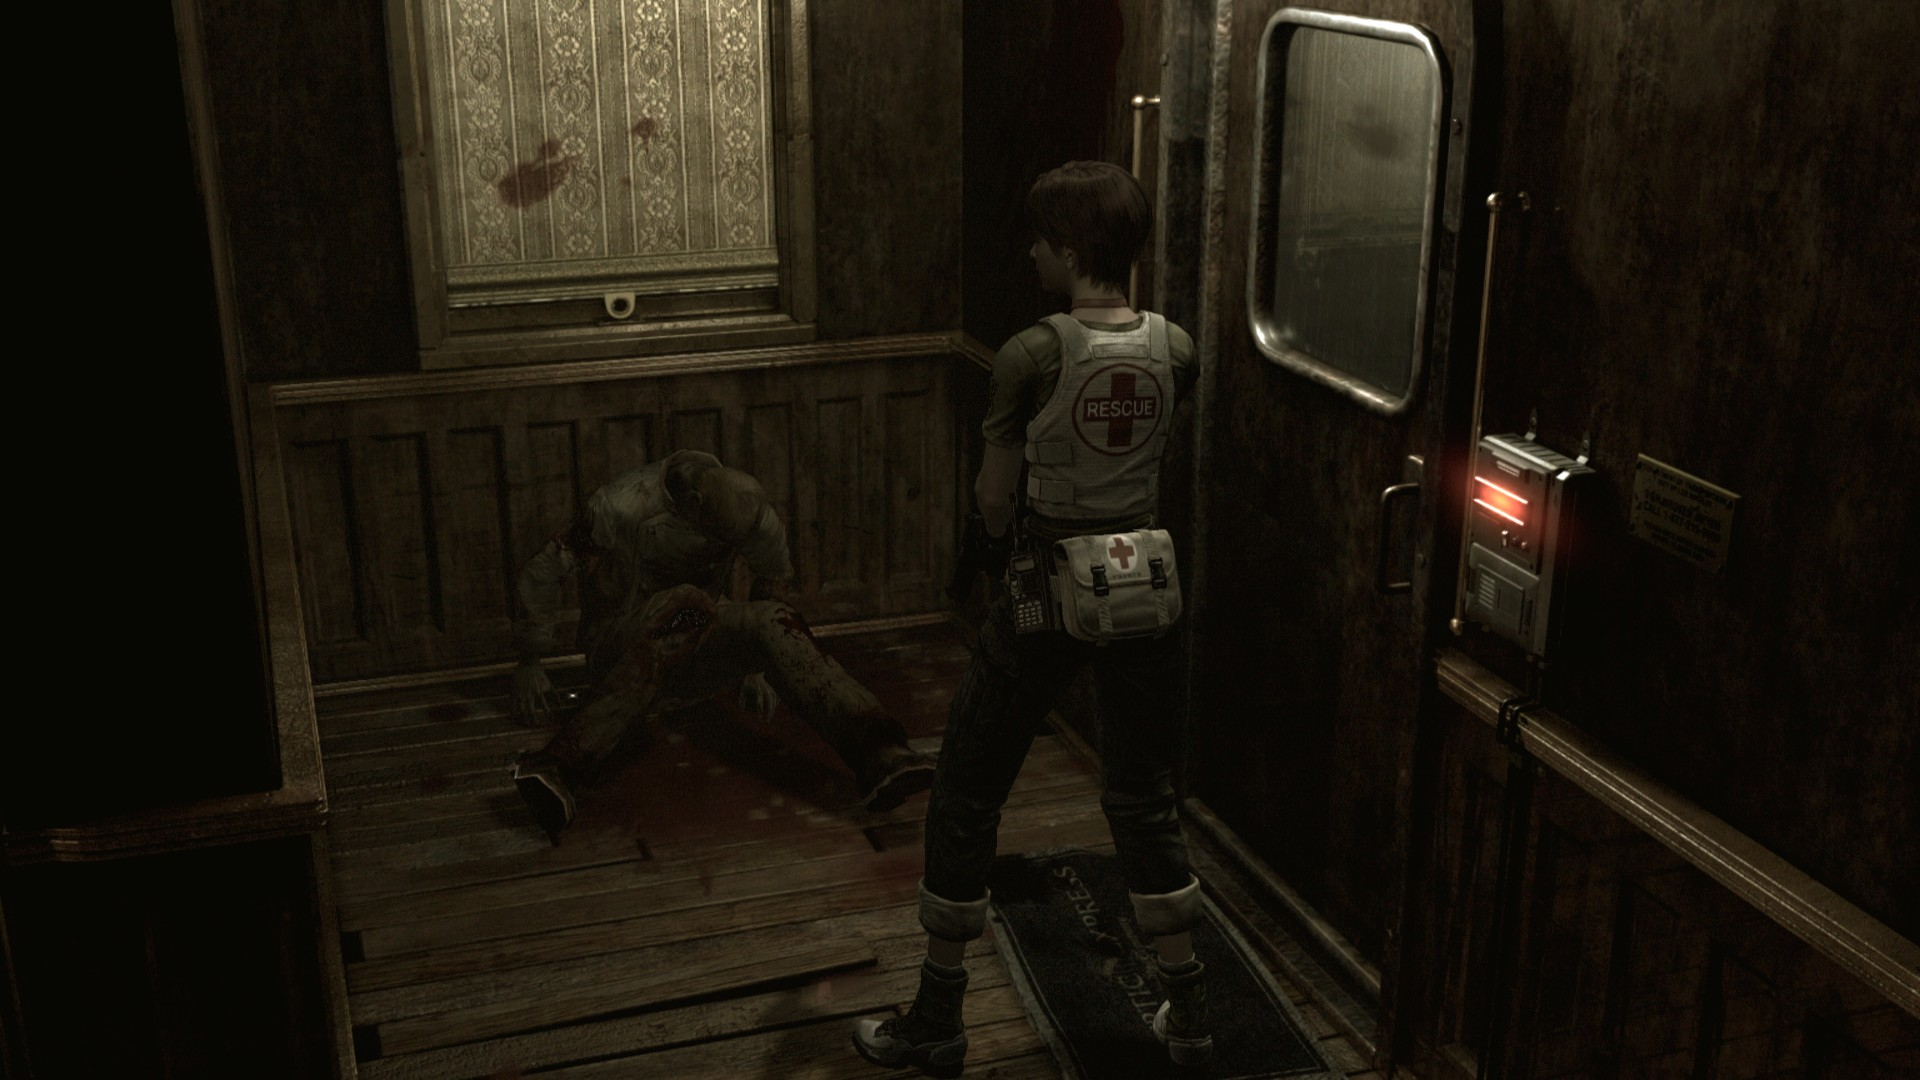 Resident Evil 0 Hd Remaster Screens Show Improved Visuals